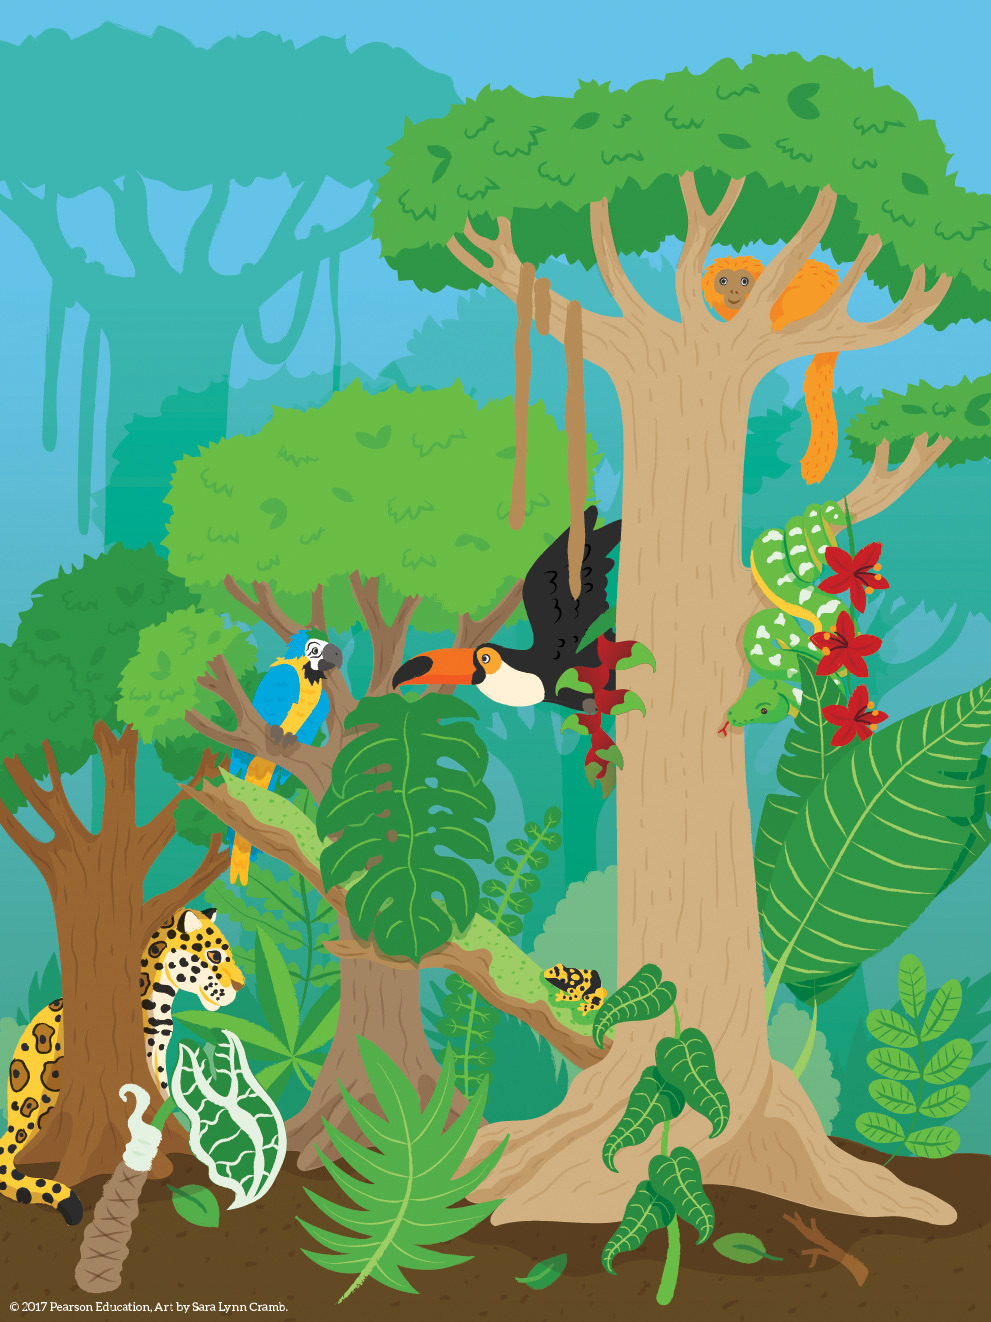 Pearson Education rainforest illustration